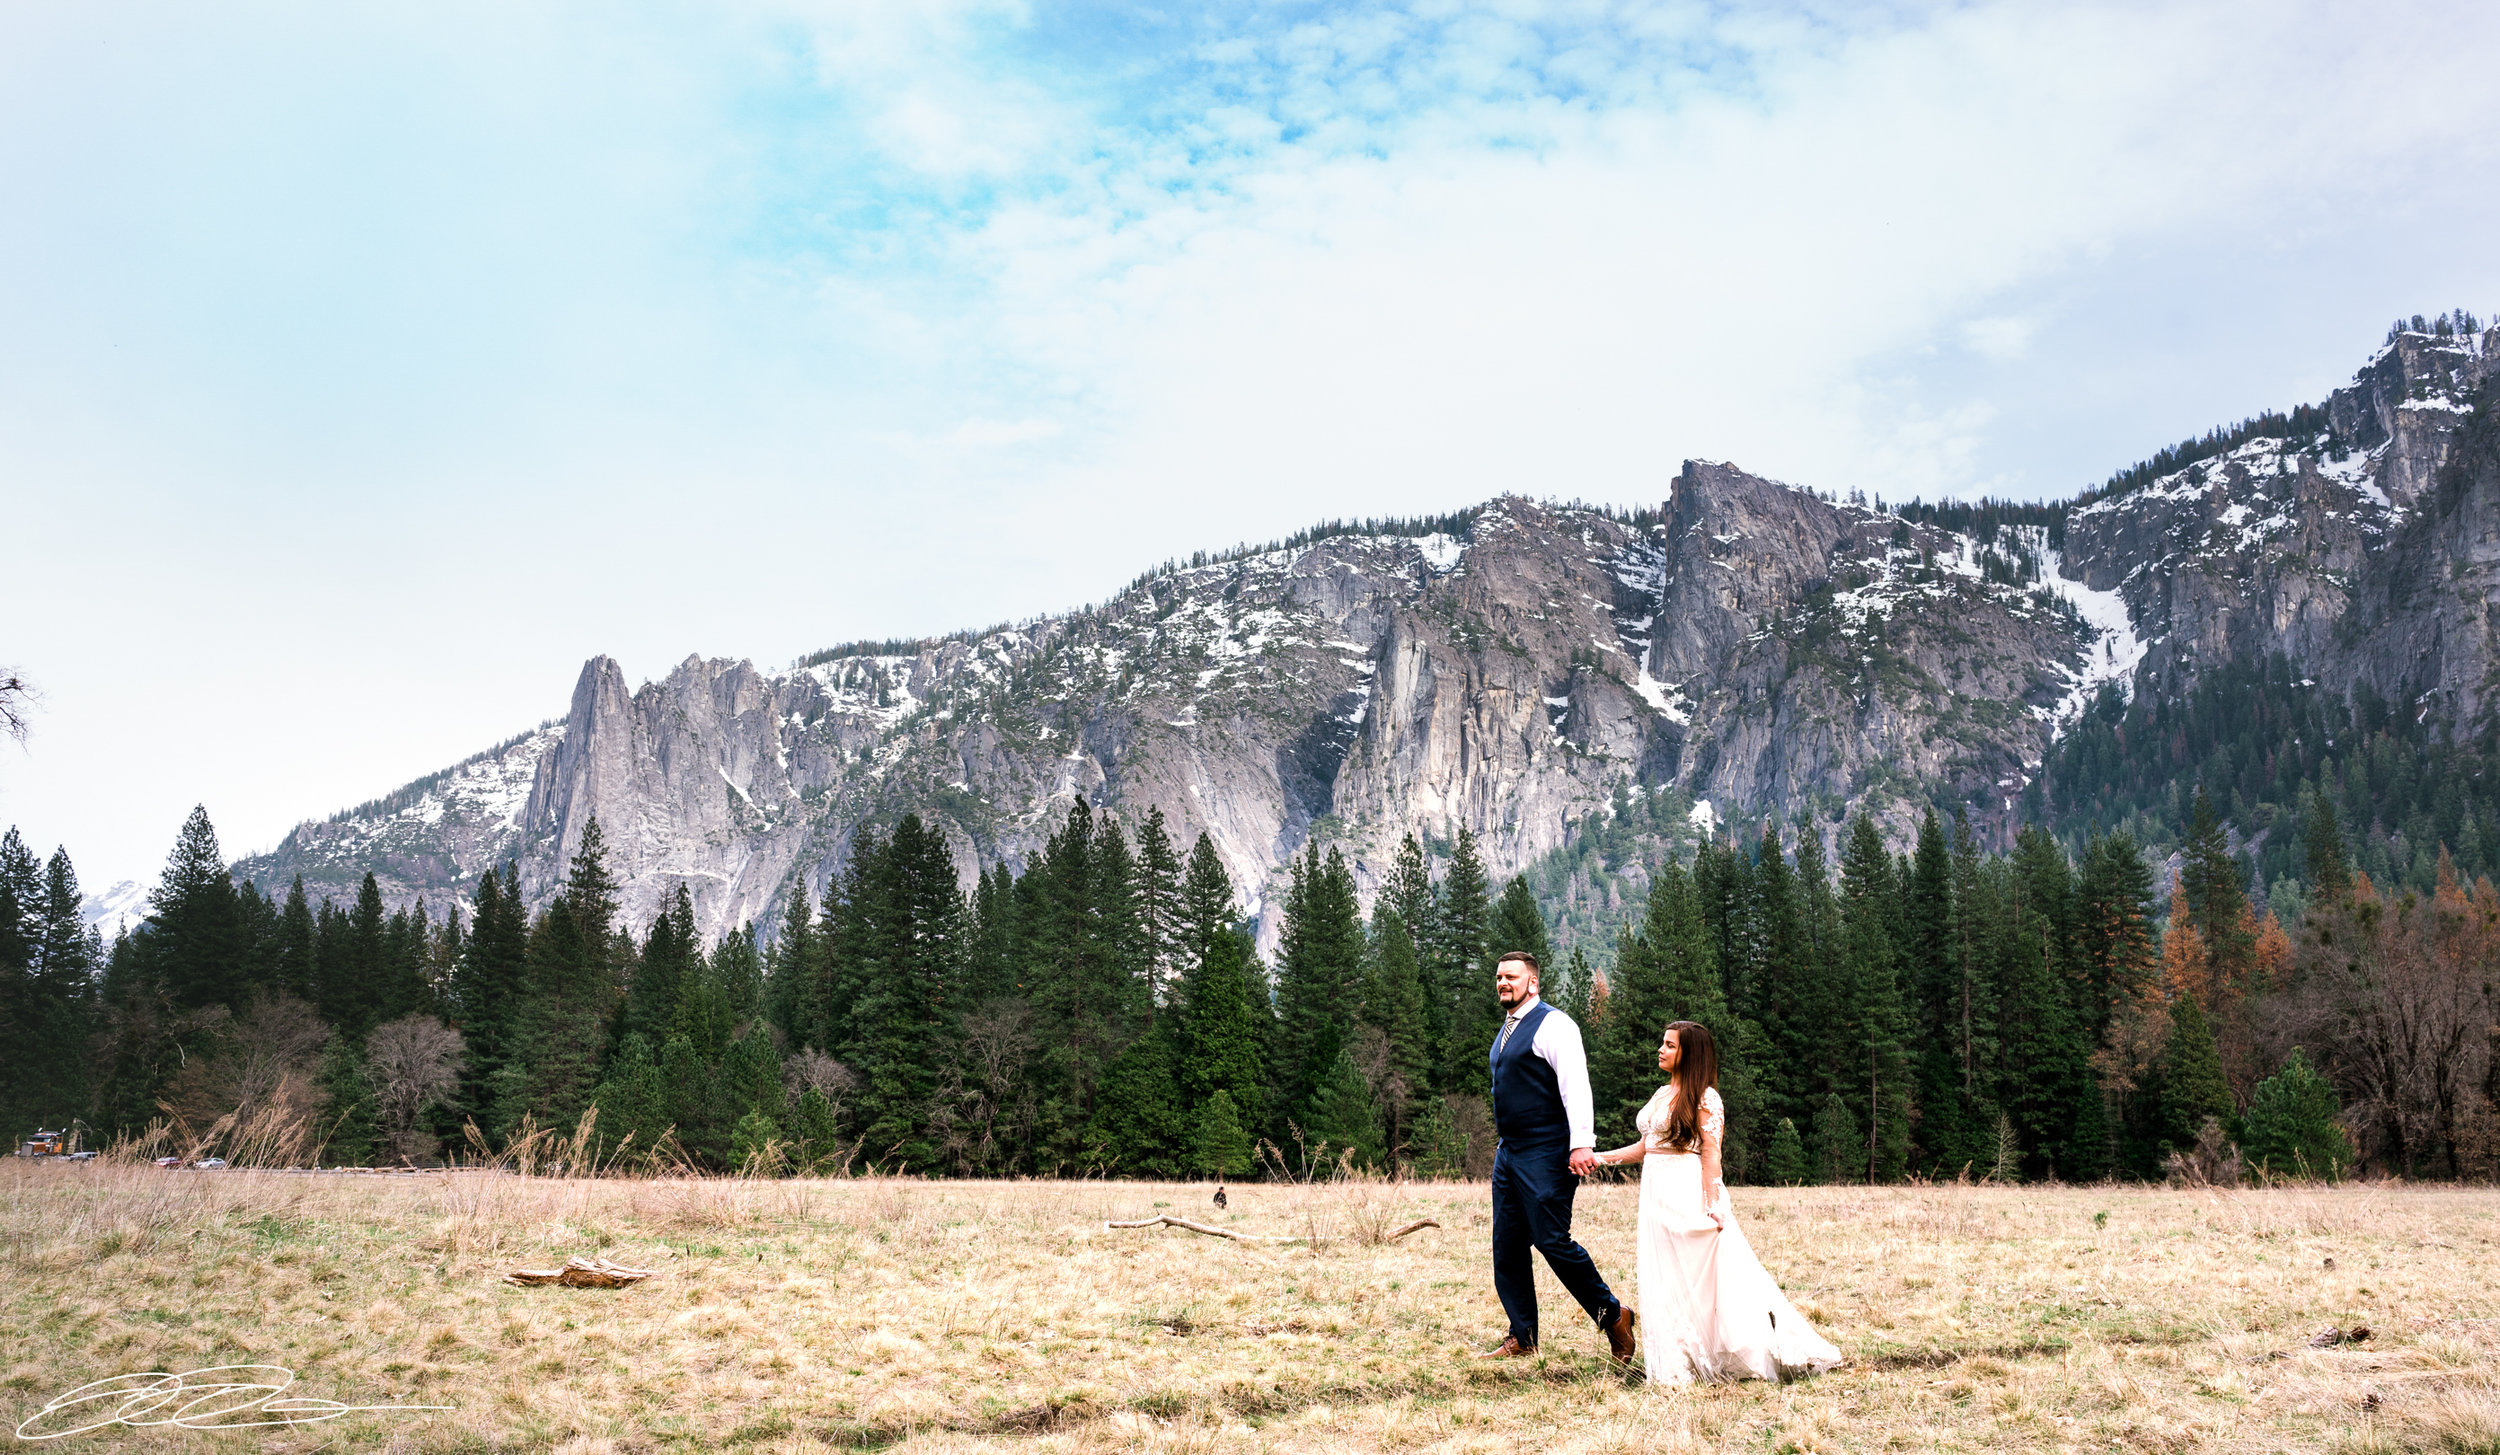 yosemite-wedding-1 (3 of 16).JPG